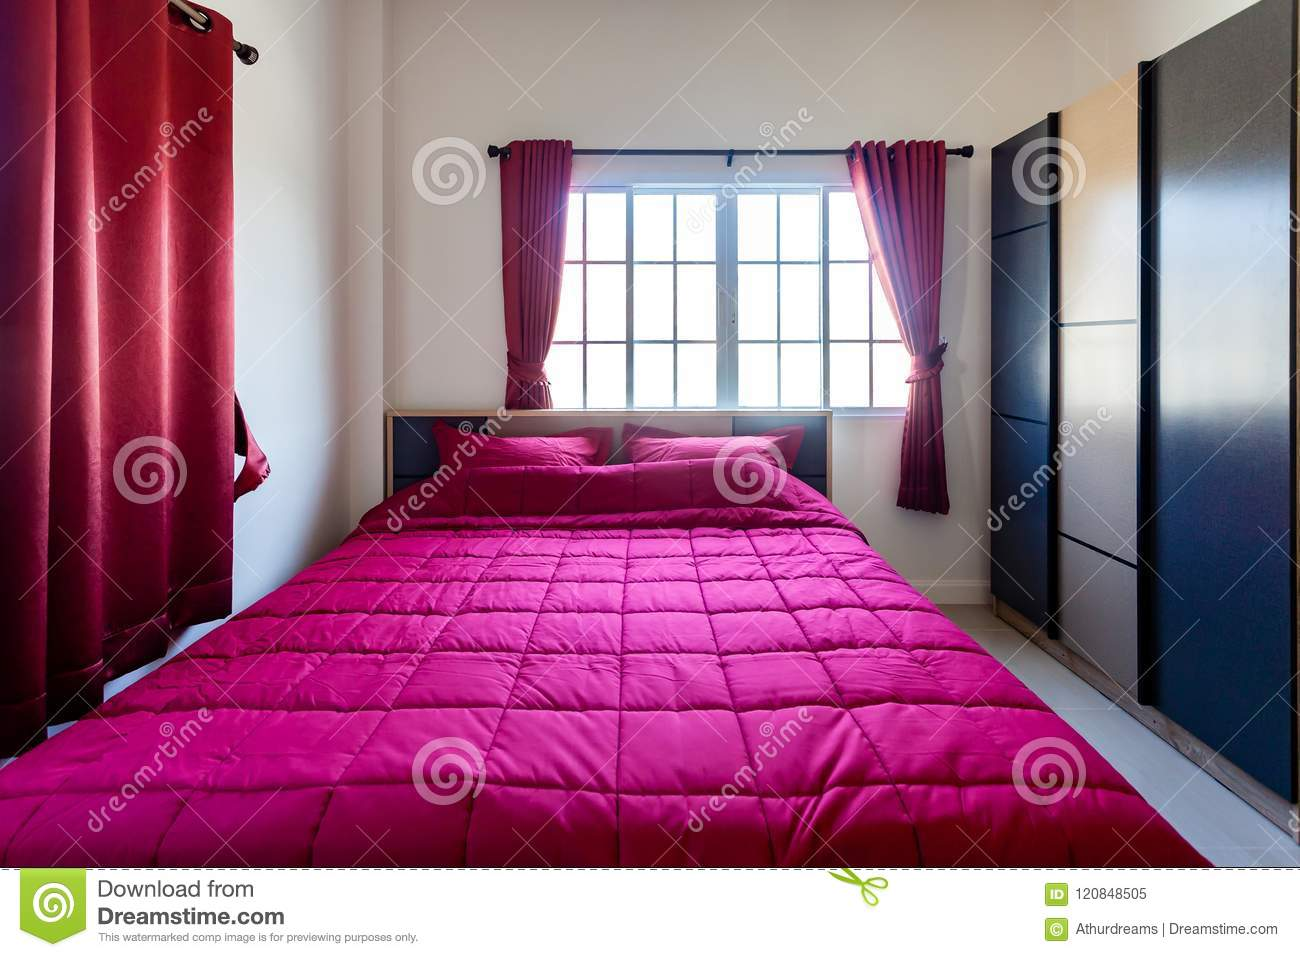 Red Pillow And Red Blanket With Red Curtain In The Bedroom With